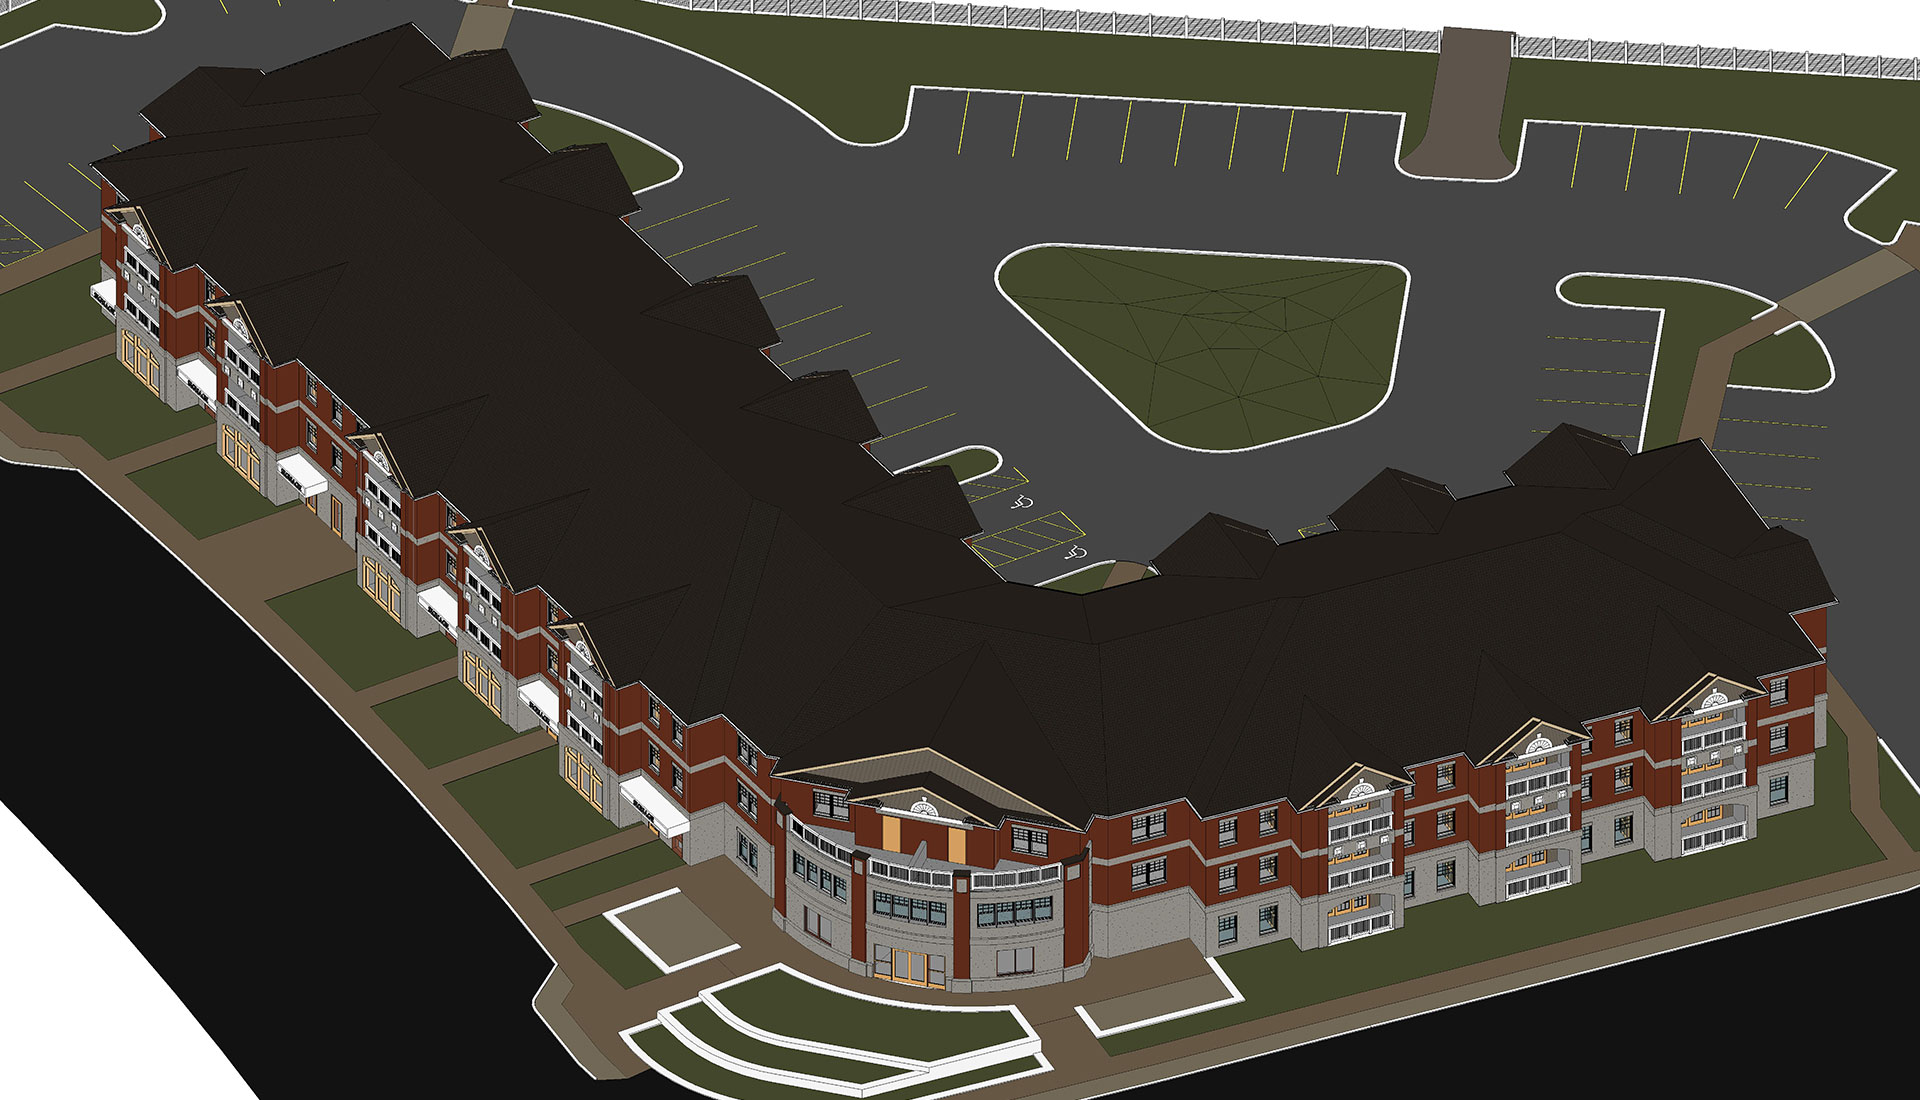 Top-View_Roofing_3D-BIM-Model_Residential-Project_Architectural-Revit-Modeling-by-United-BIM